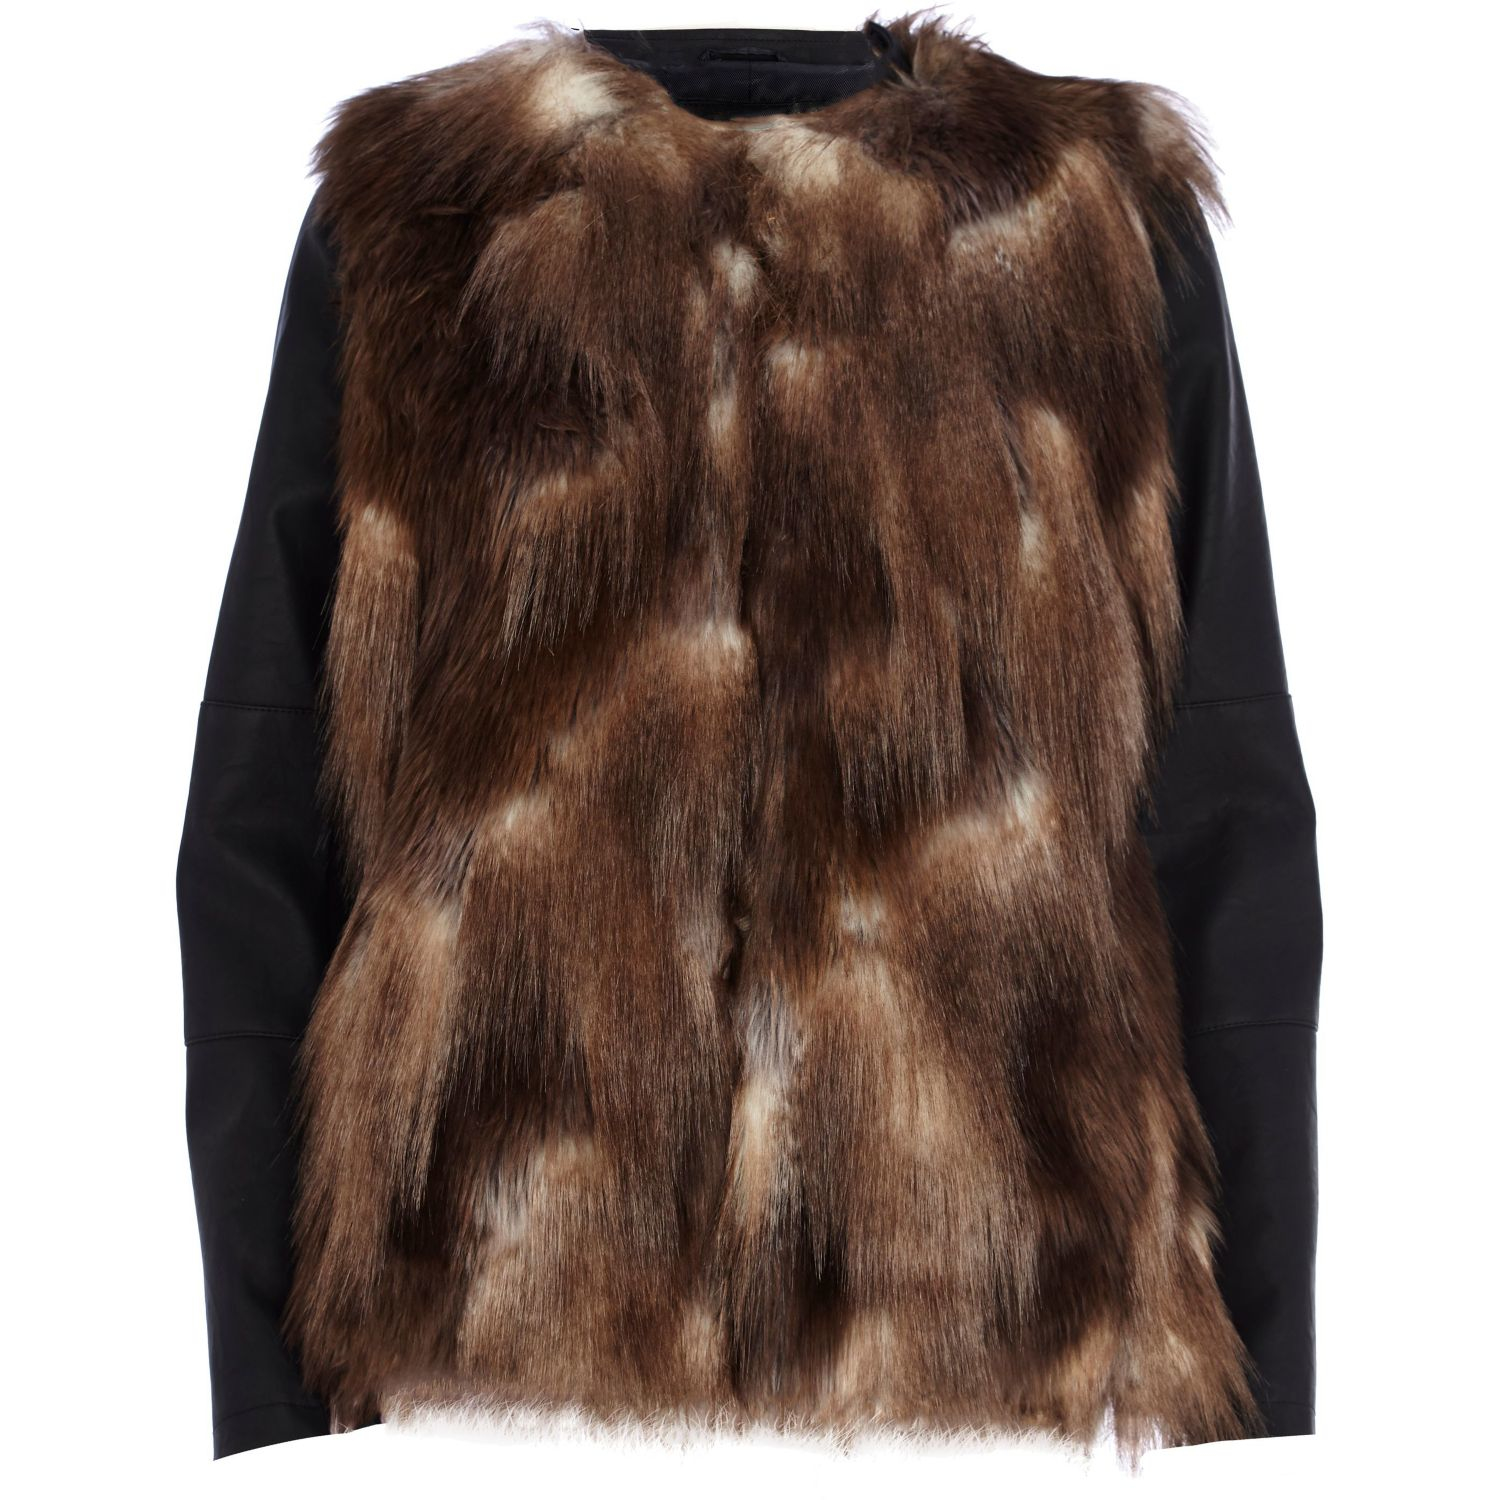 River island Brown Faux Fur Leather-look Sleeve Jacket in Brown | Lyst